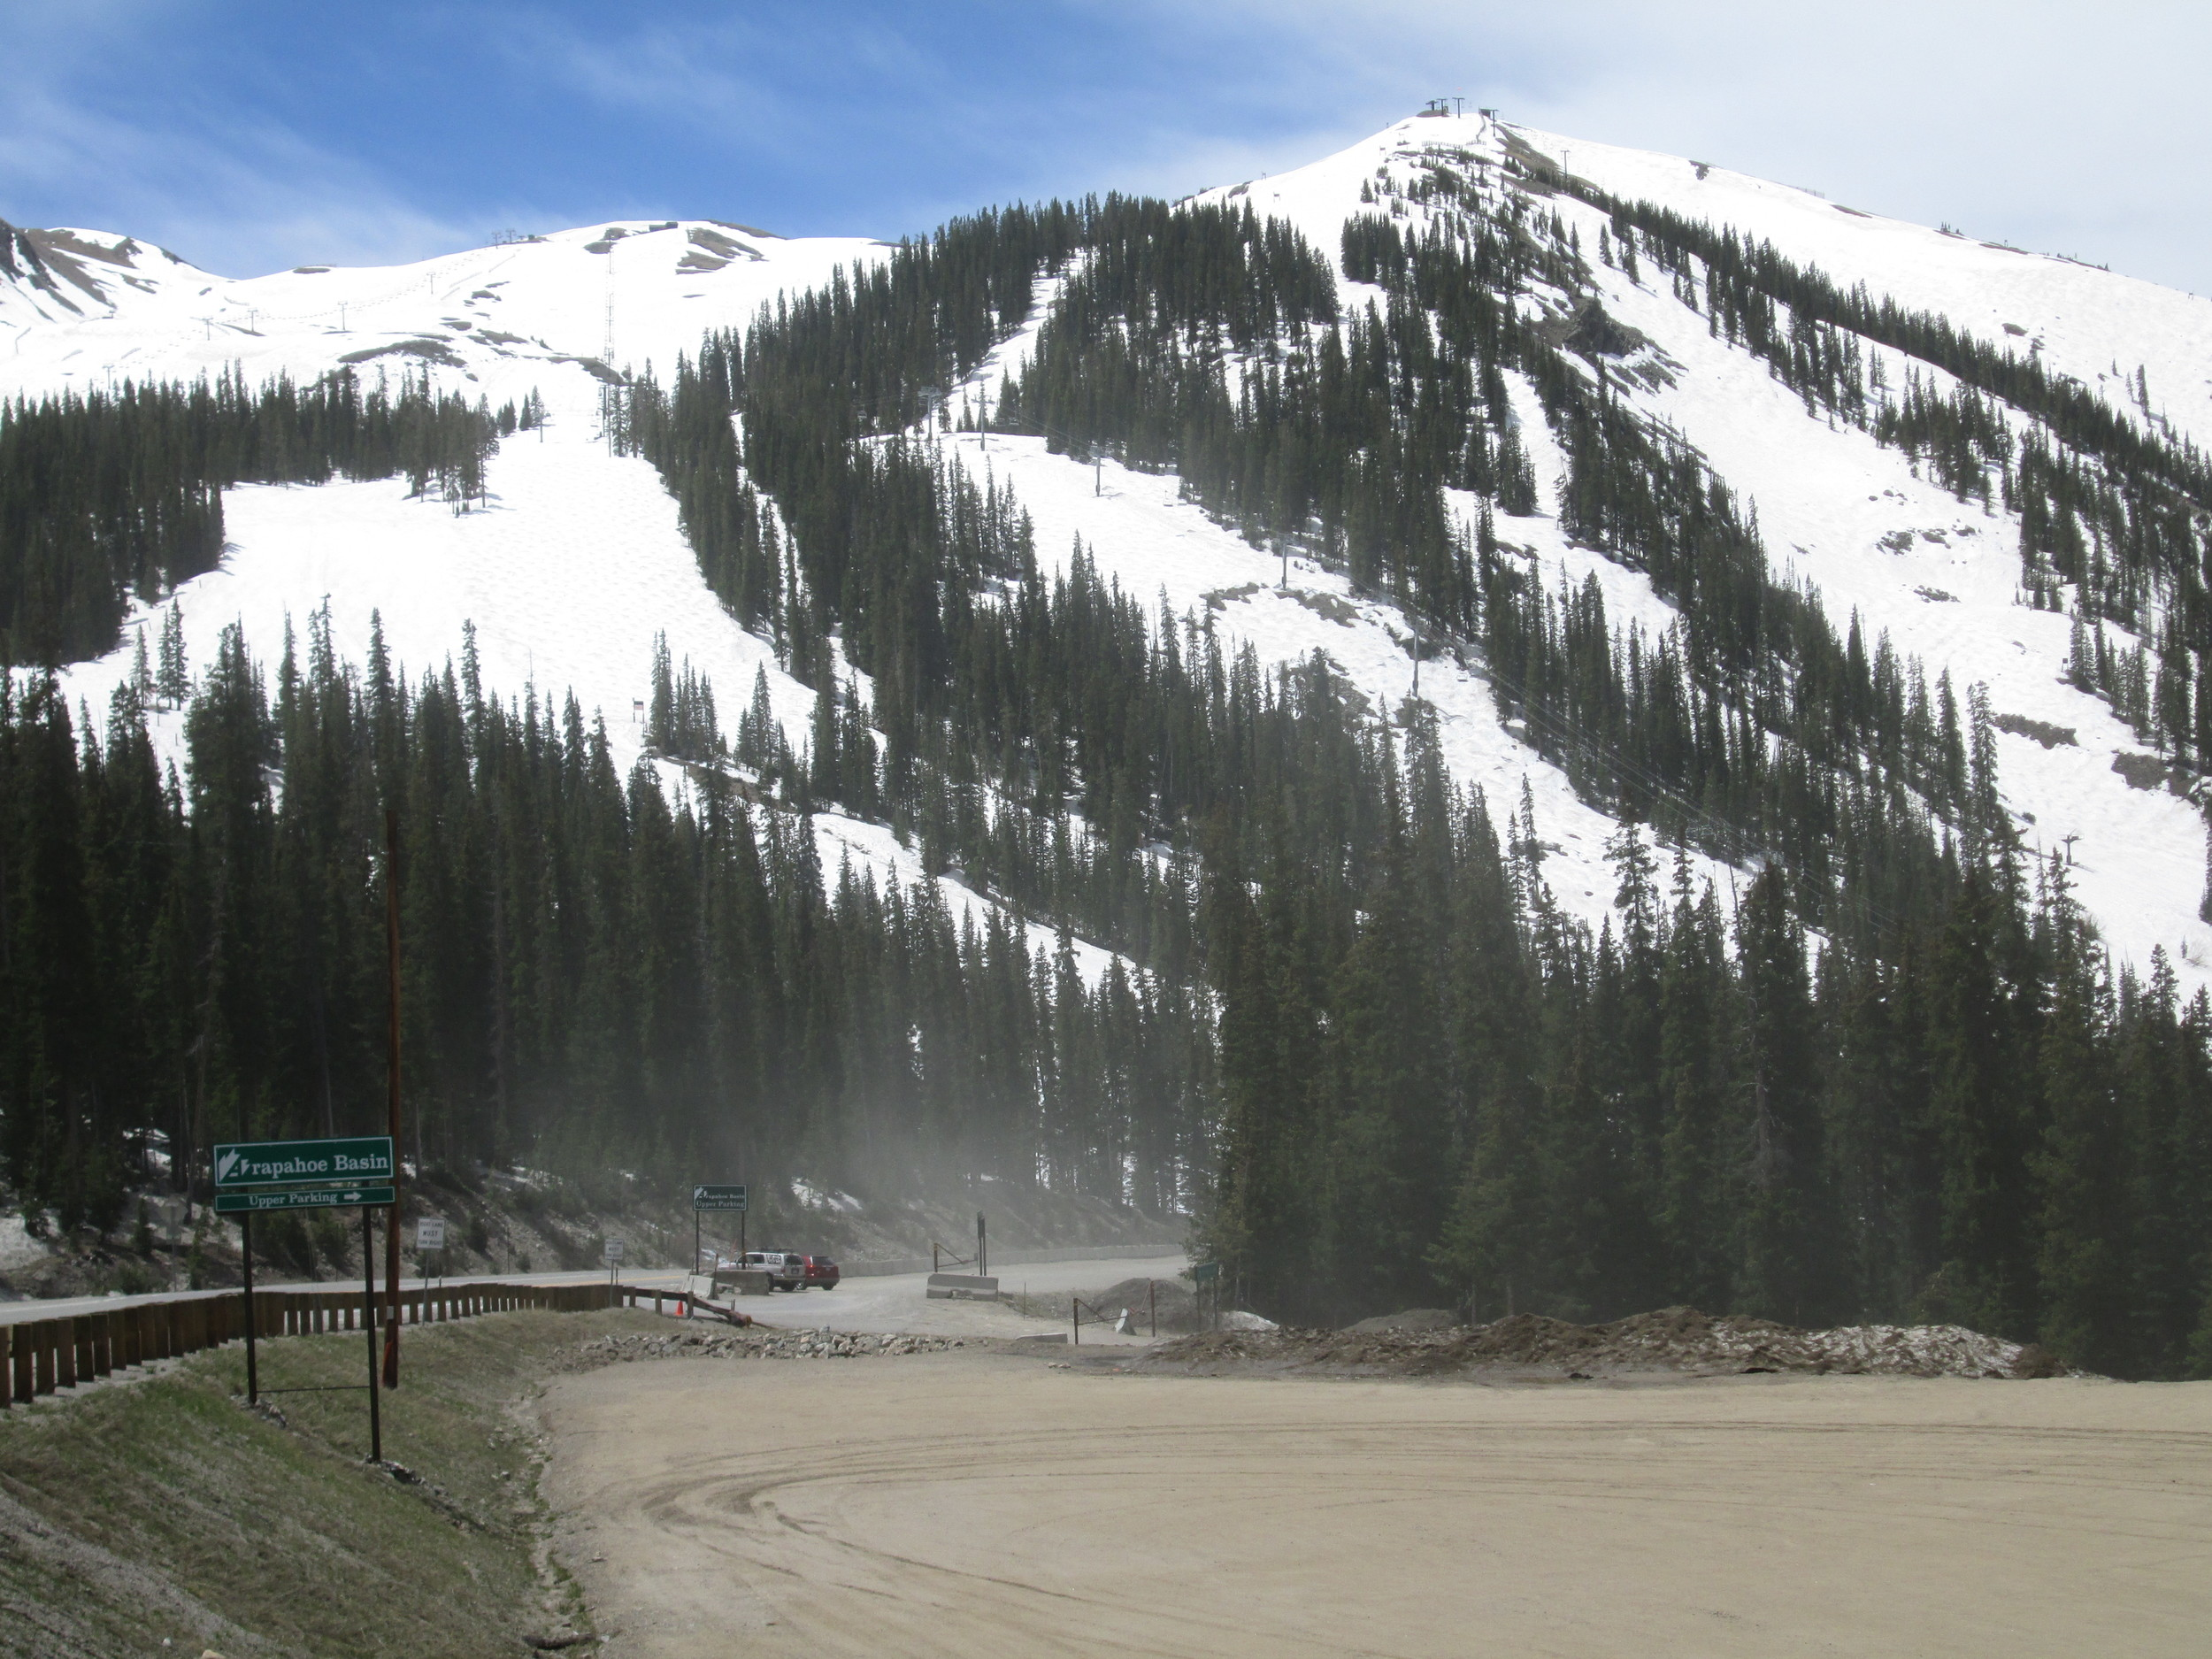 During this site visit, blustery winds occasionally produced blowing dust from the nearby Arapahoe Basin gravel parking lots. A sample of dirt was collected from the parking area, for comparison to the 'local' materials (i.e., the non-desert dust) found in the 'all layers merged' sample collected in spring 2013.